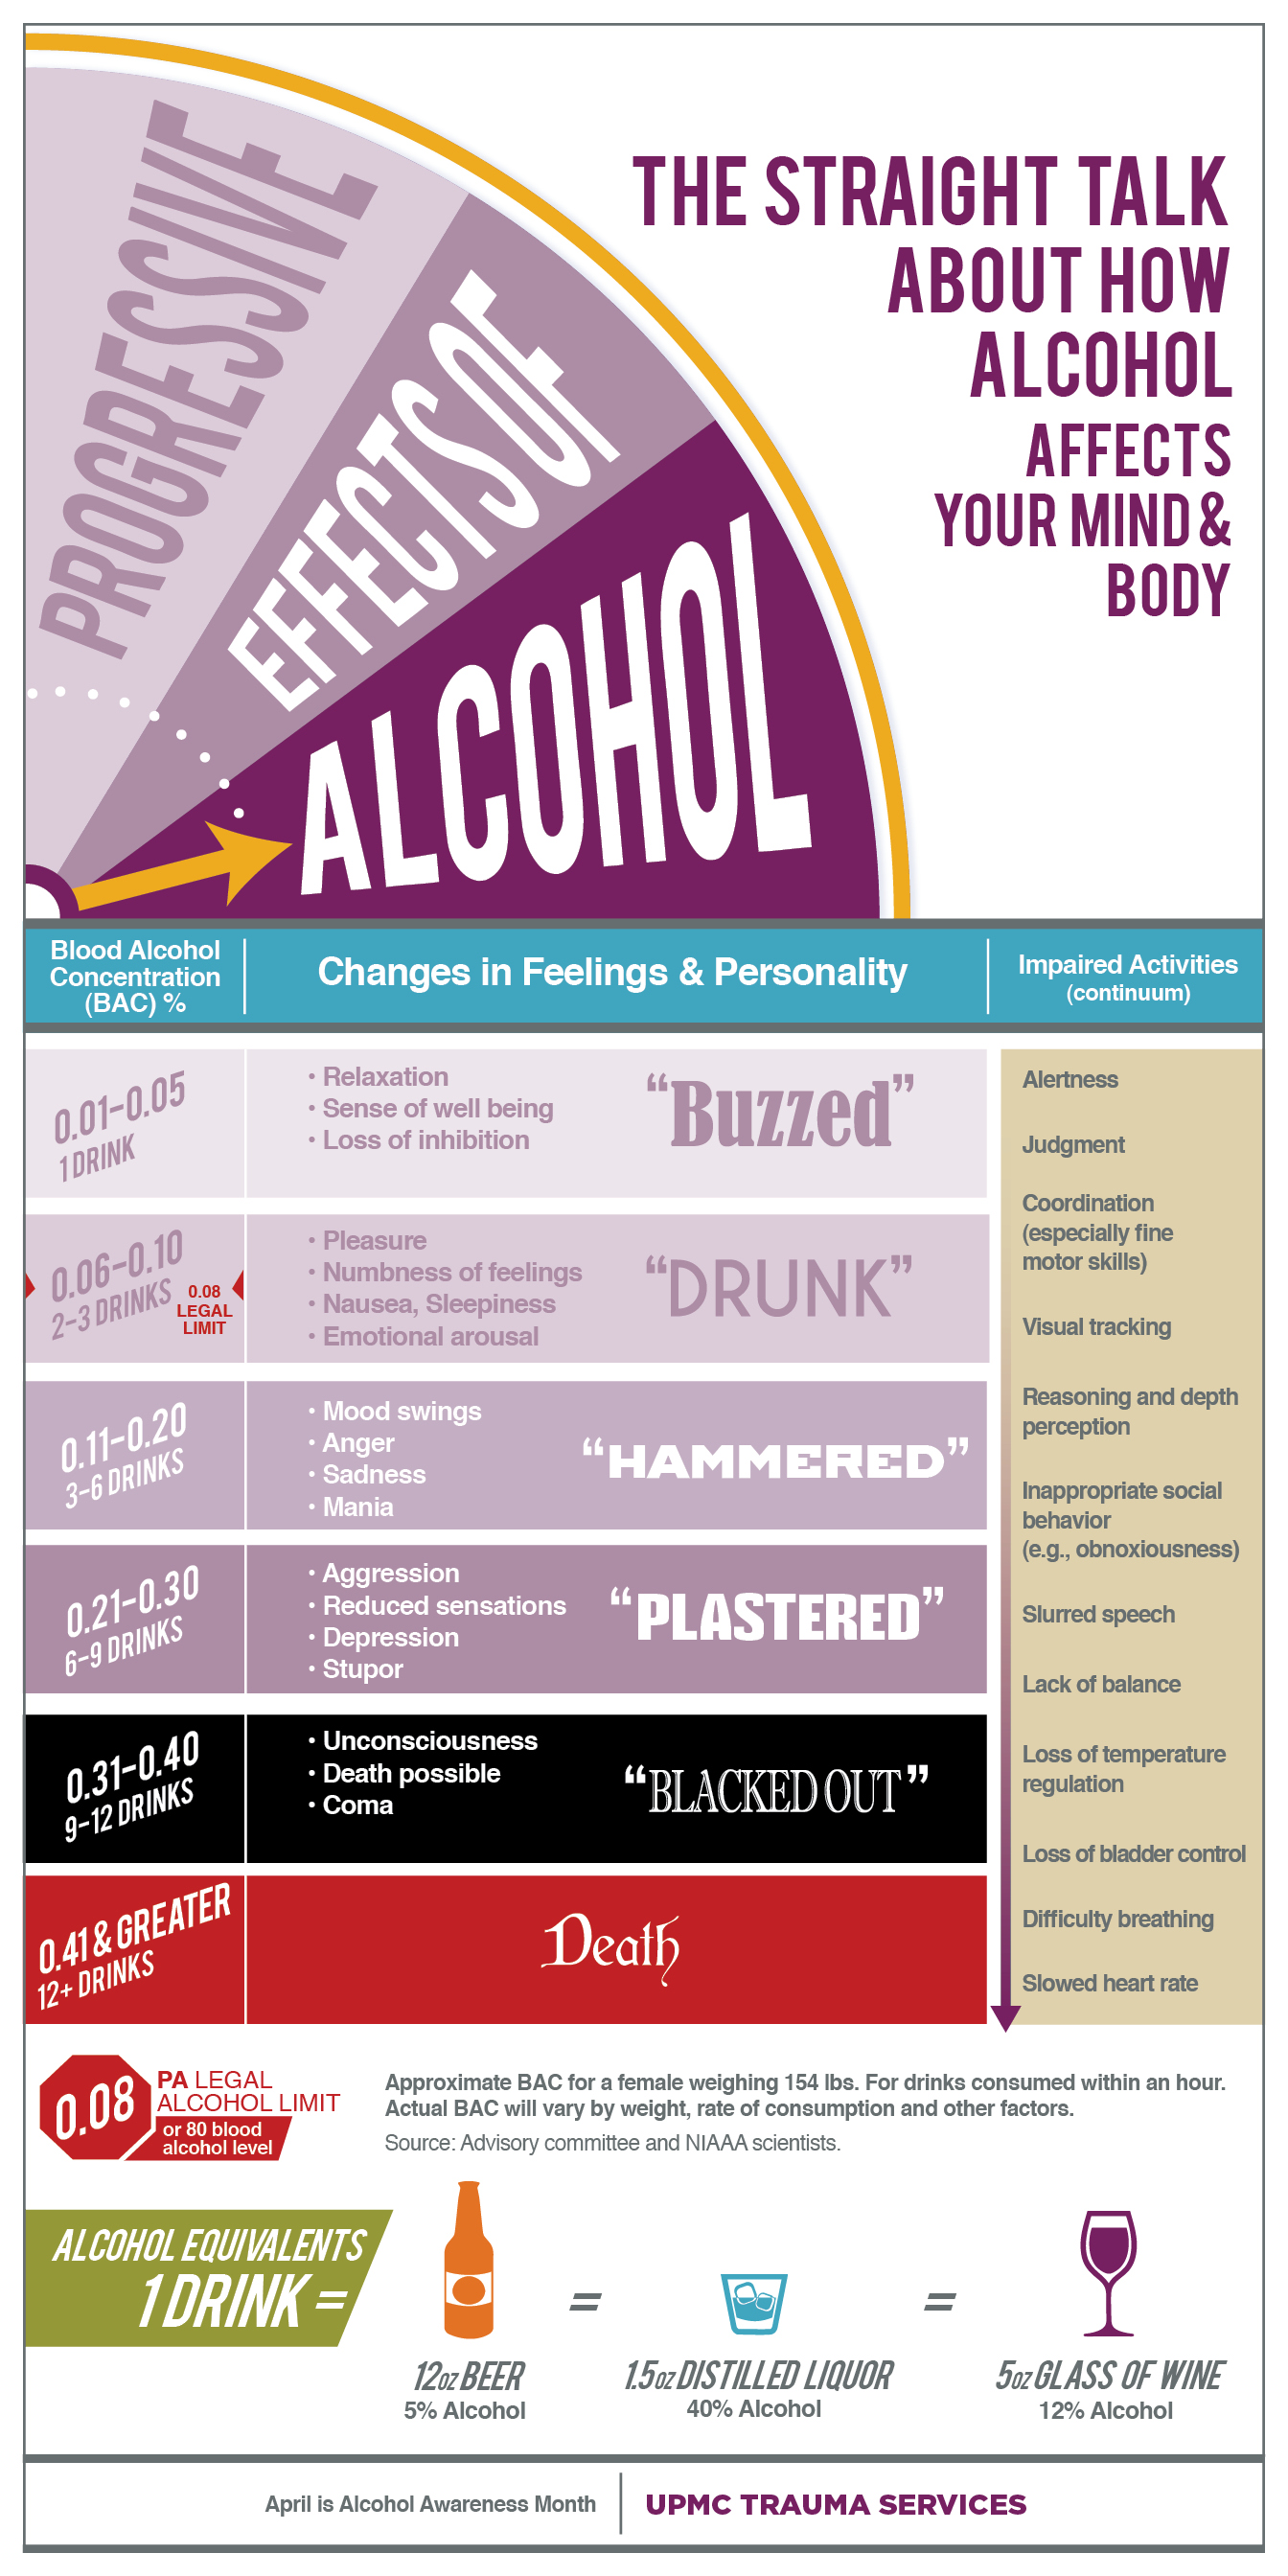 Effects Of Alcohol On Your Mind And Body